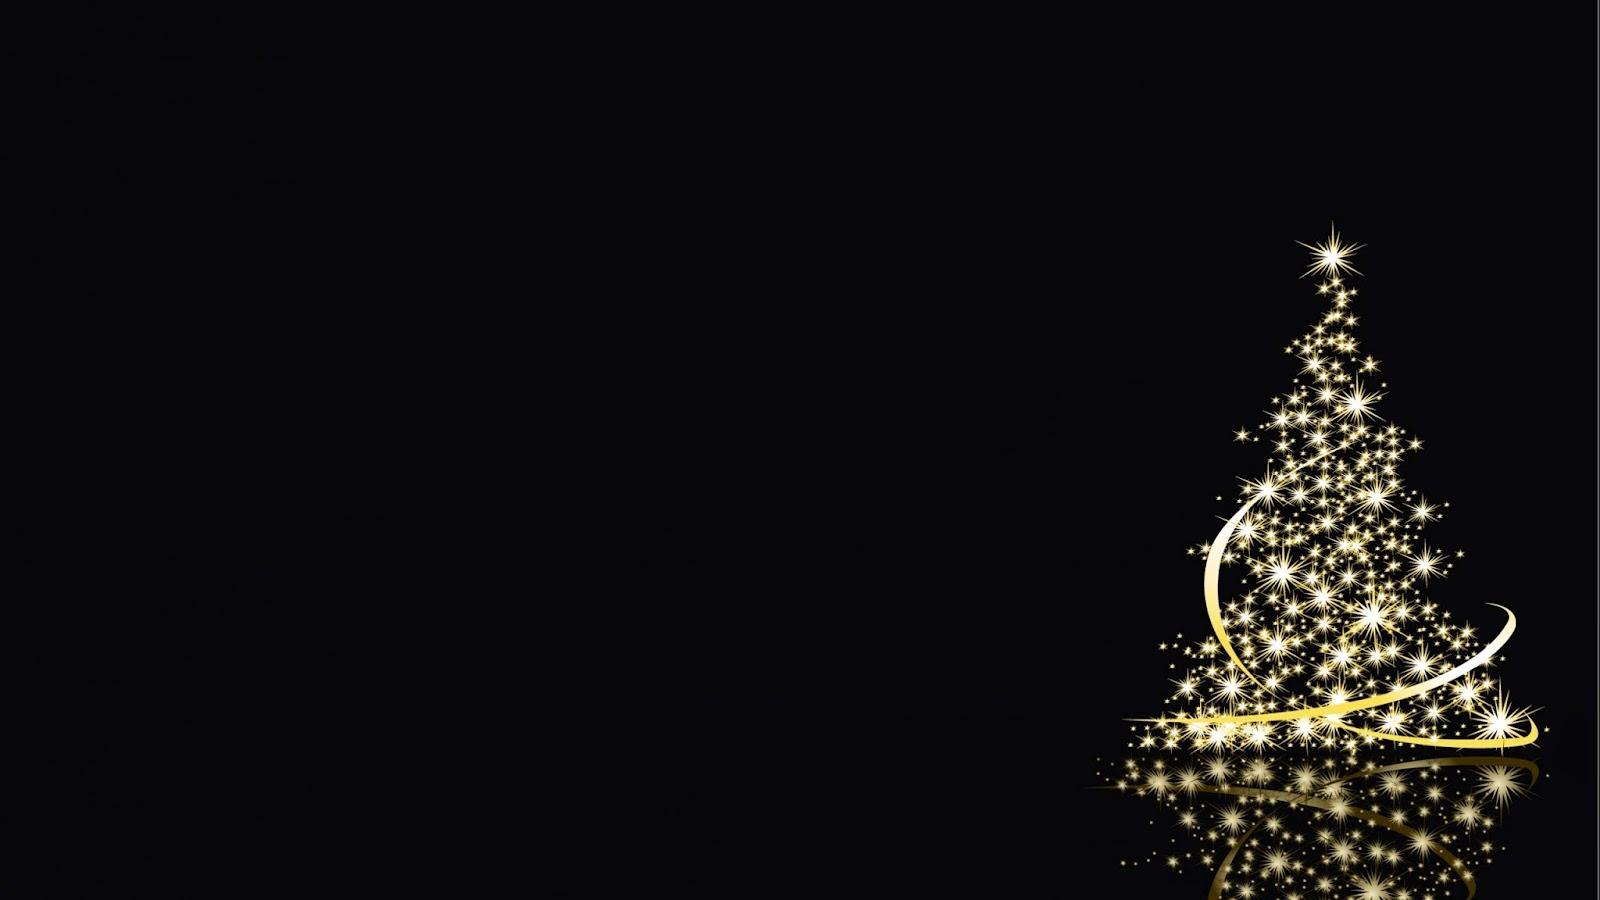 golden-christmas-tree-design-with-stars-Black-dark-background-image.jpg